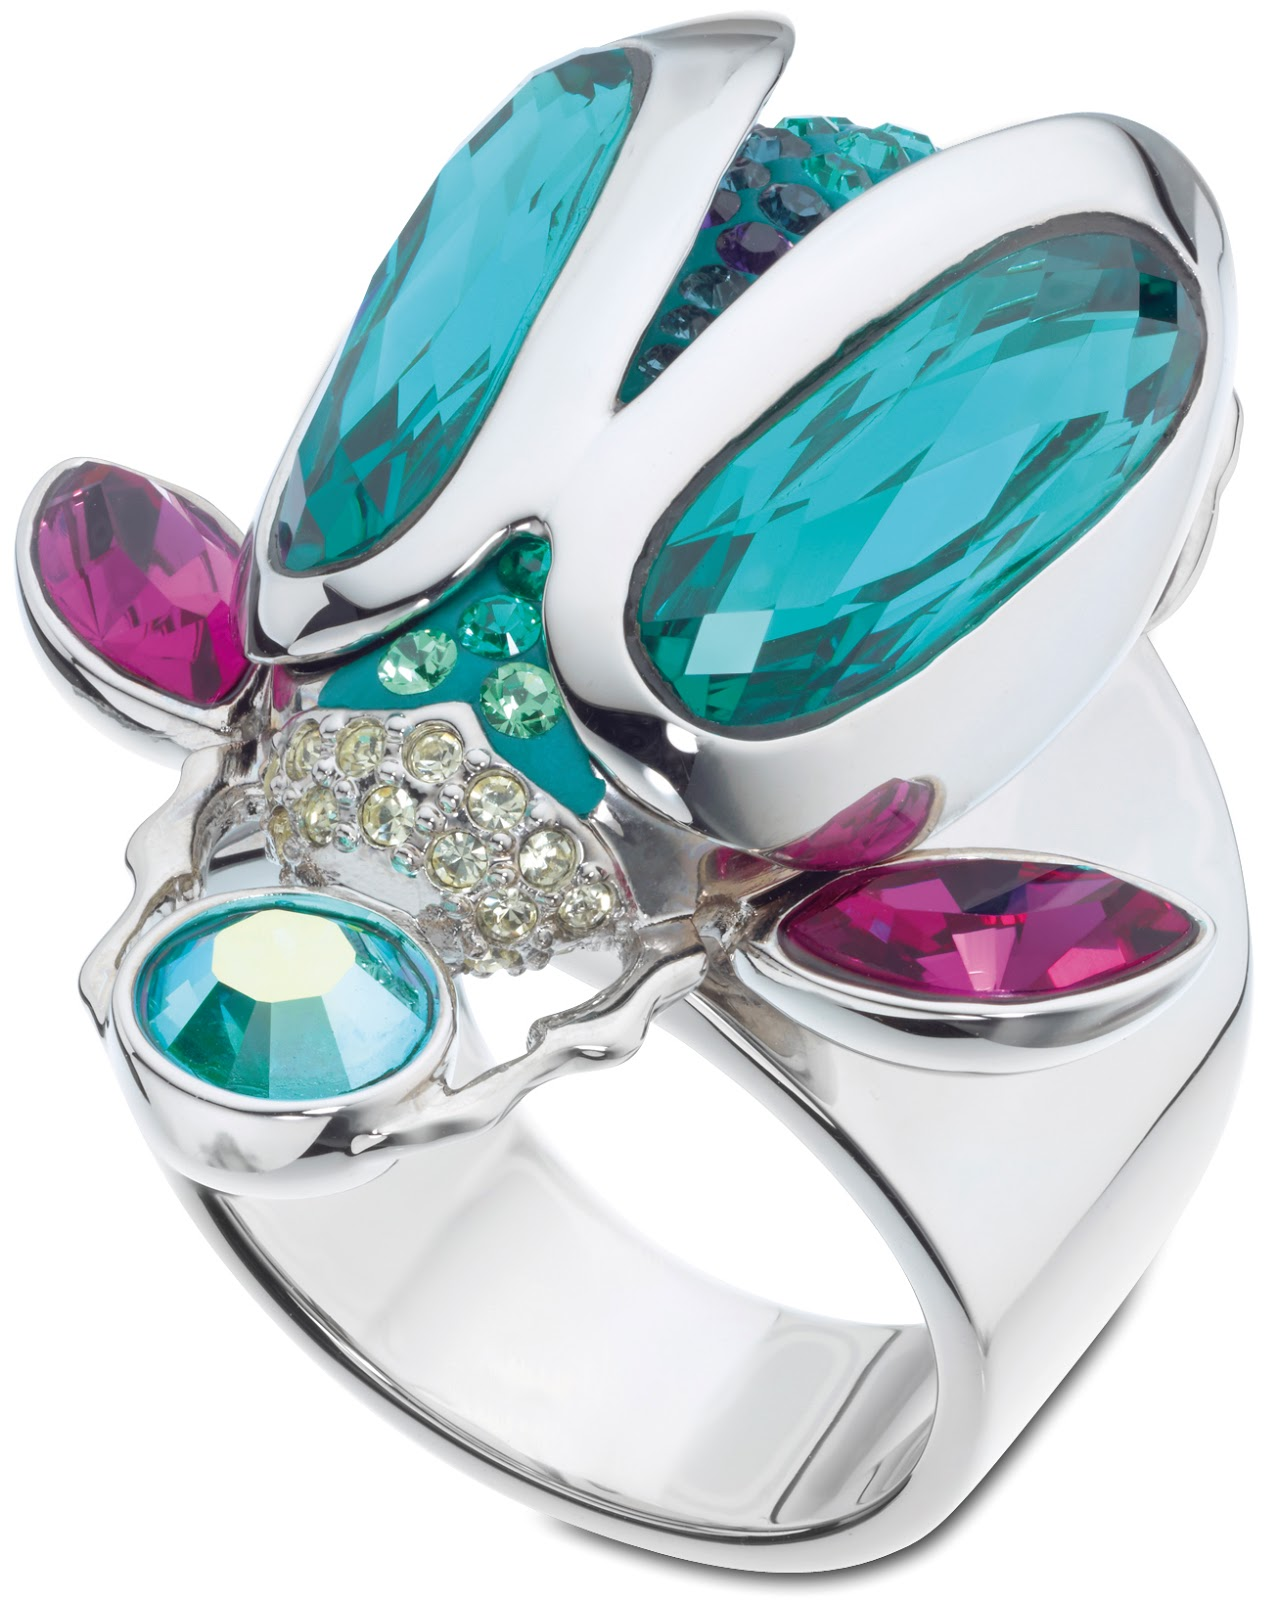 Tropical Paradise translucent ring